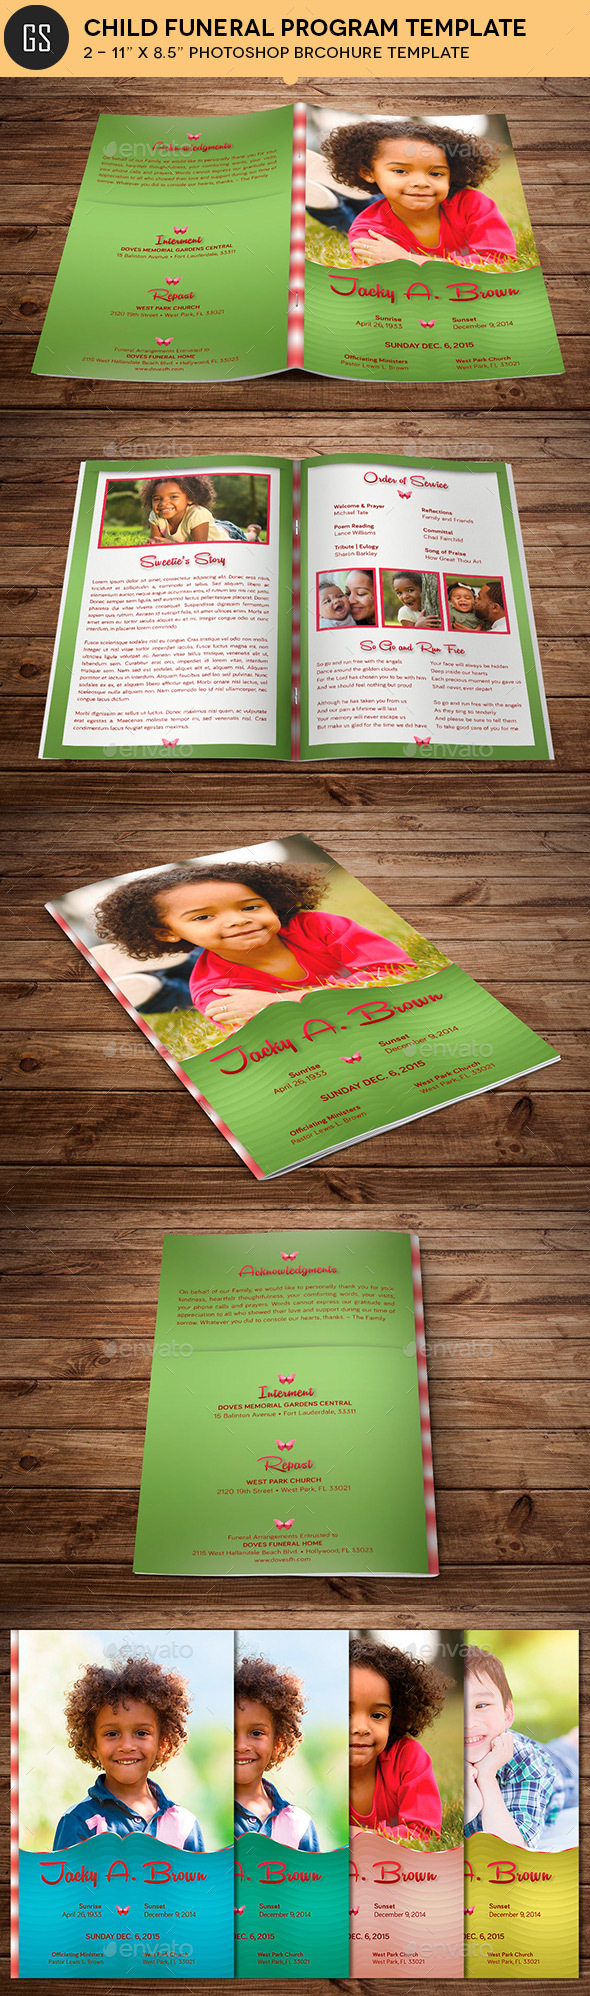 Child Funeral Program Template Photoshop - Informational Brochures